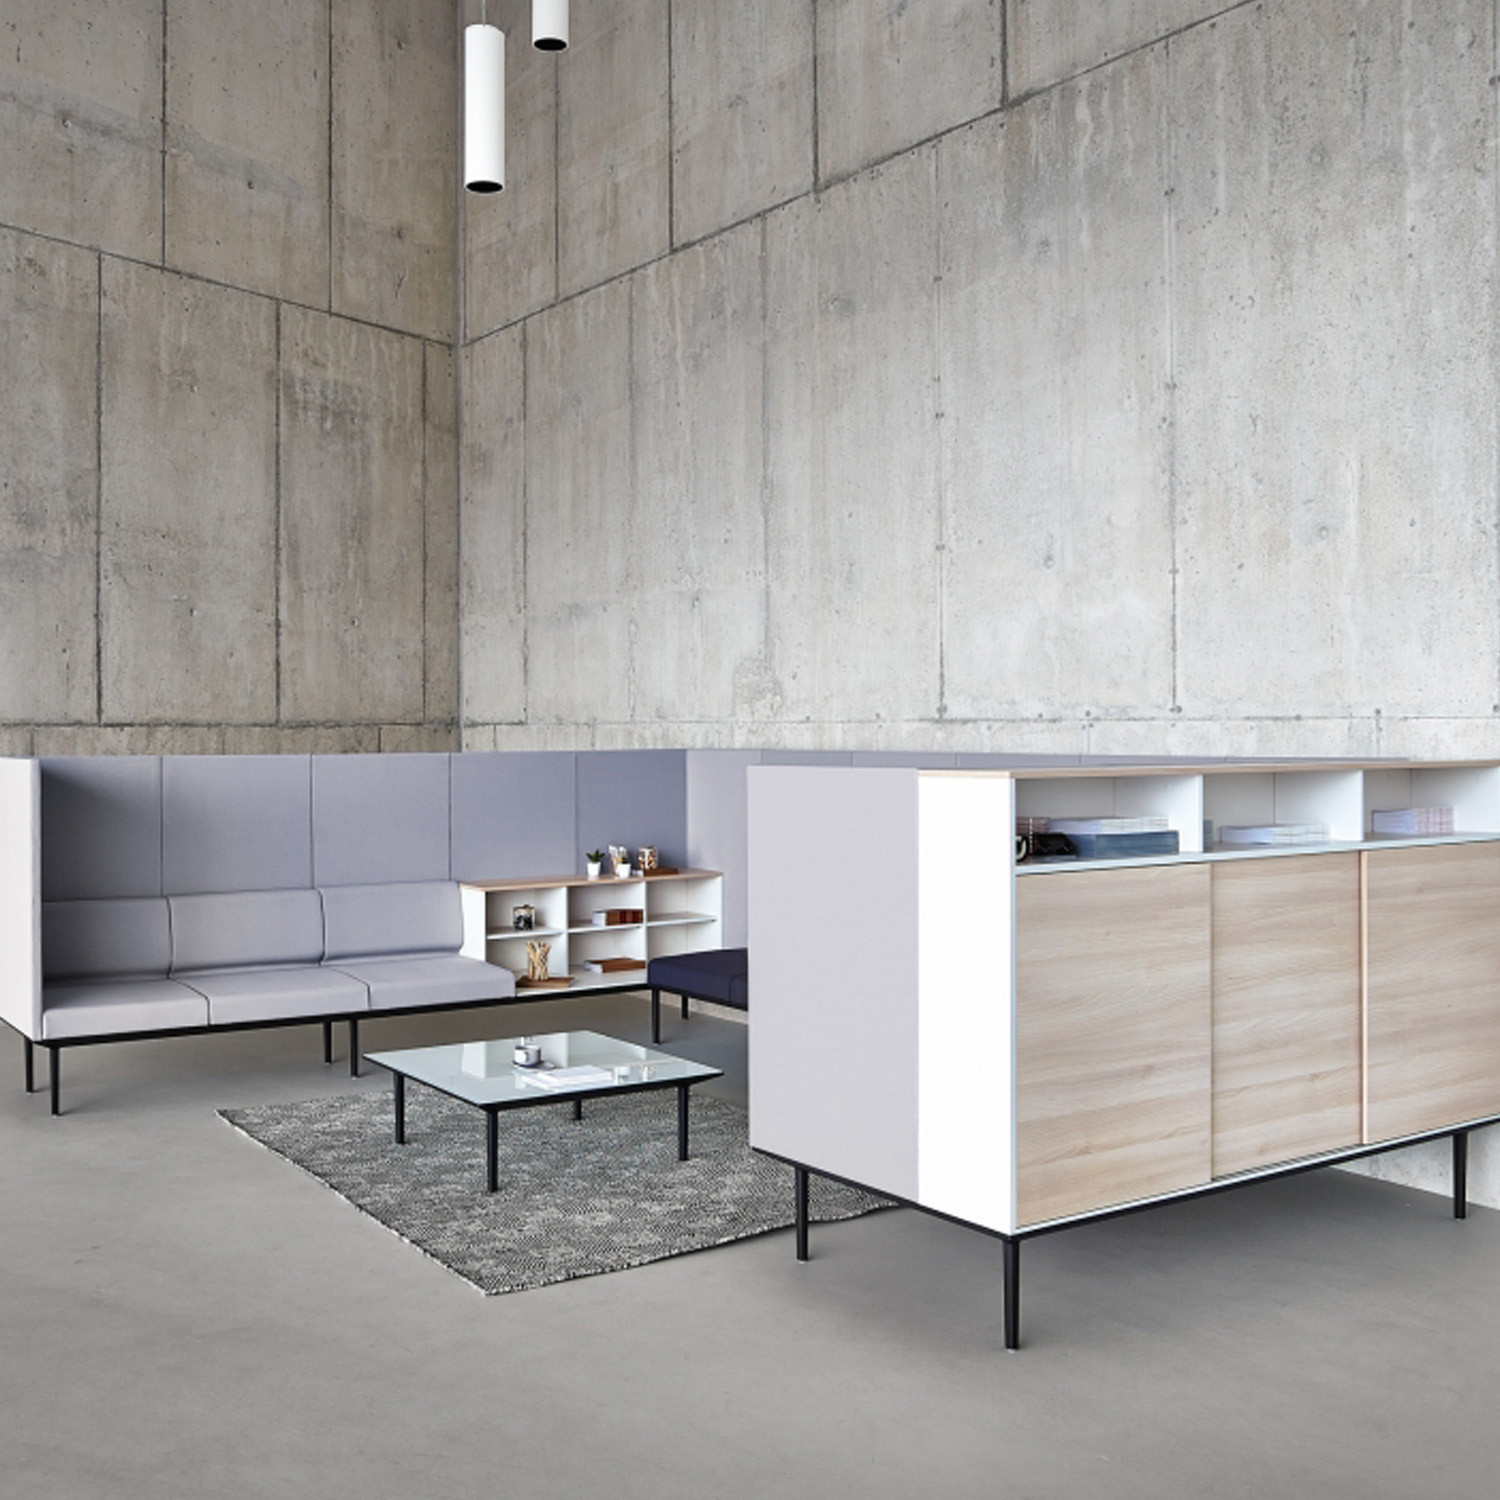 Actiu Longo Modular Furniture Configuration